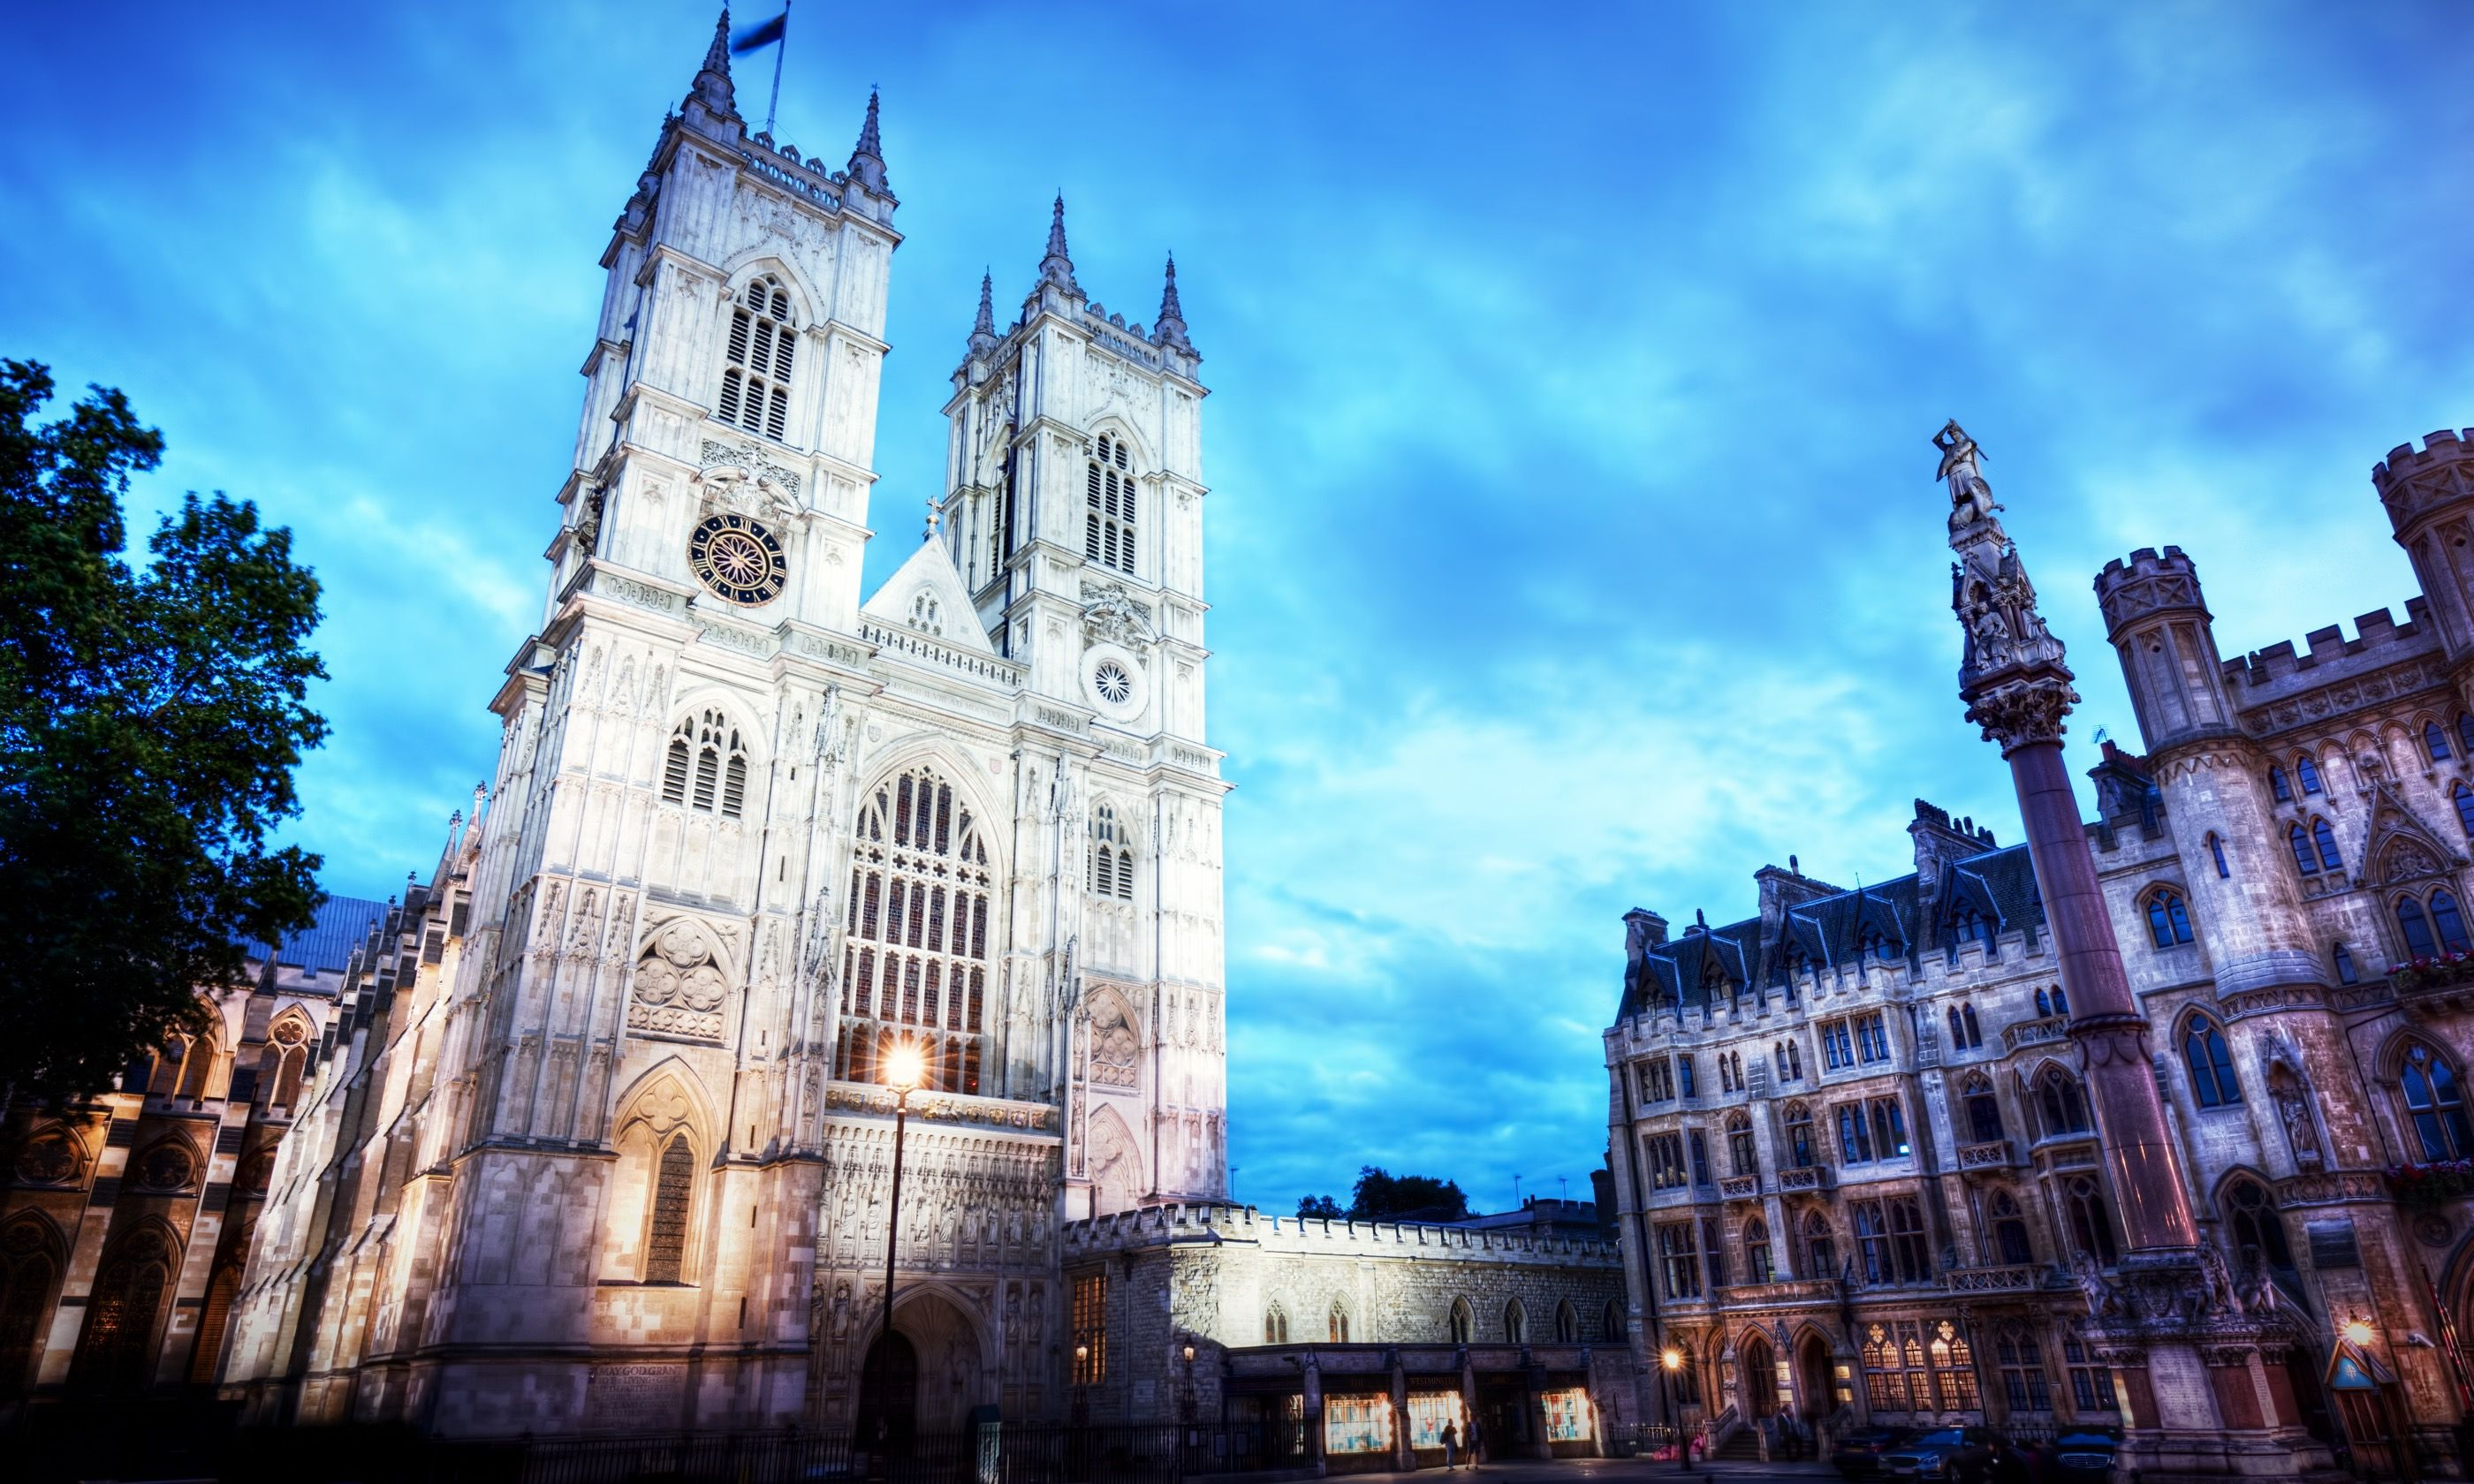 Westminster Abbey at night (Shutterstock.com)